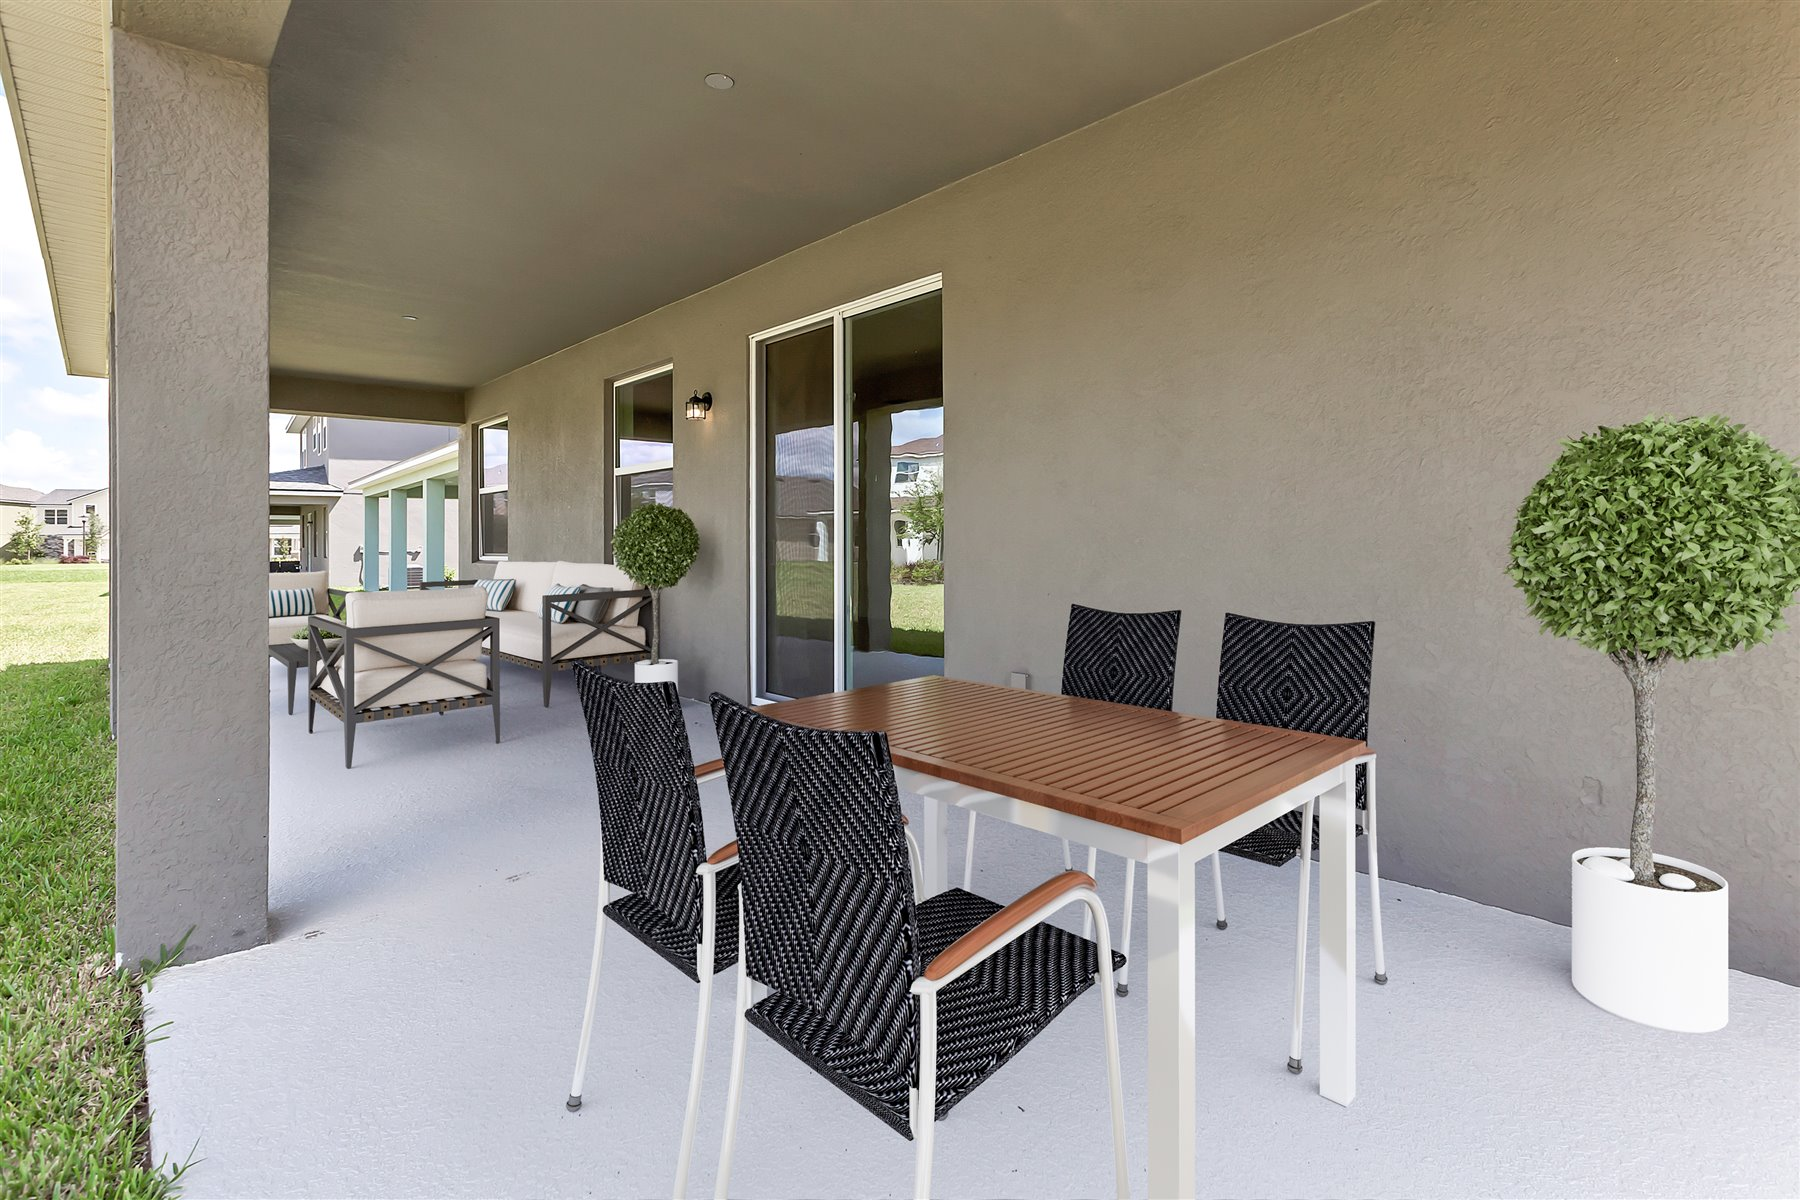 Newport Plan Patio at Meridian Parks in Orlando Florida by Mattamy Homes